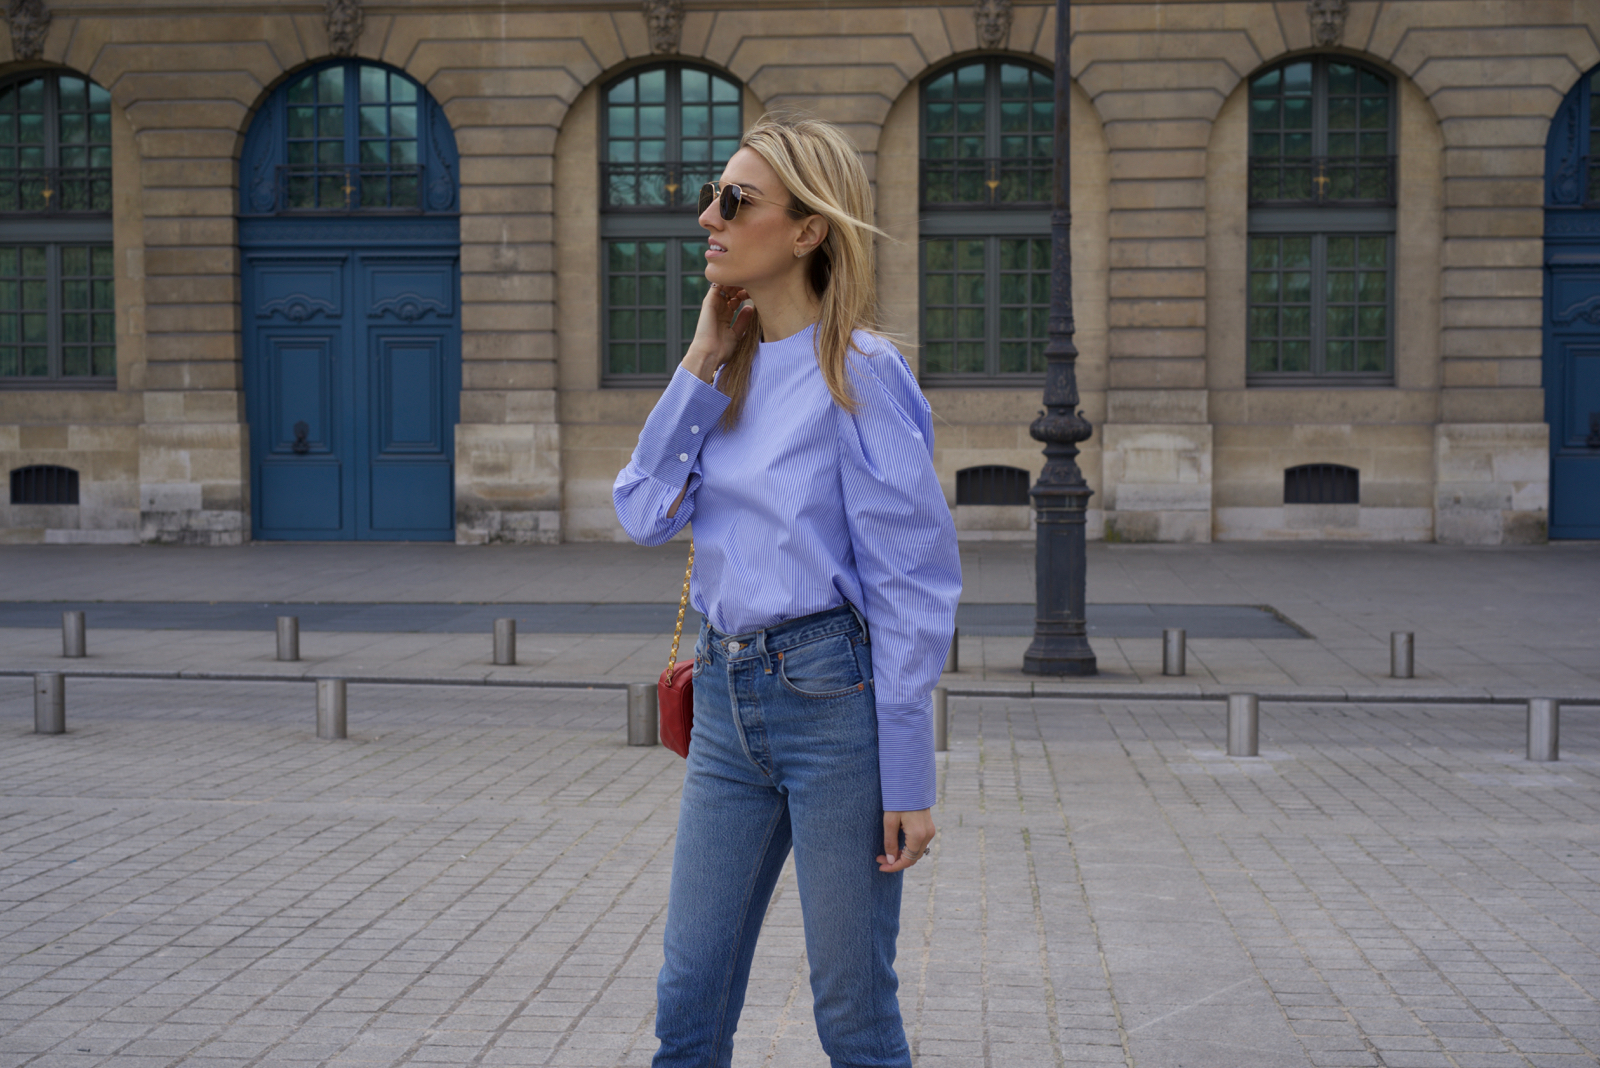 Paris Fashion Week Street Style, PFW, Striped Poplin shirt, Levi's, Chanel, Paris Travel